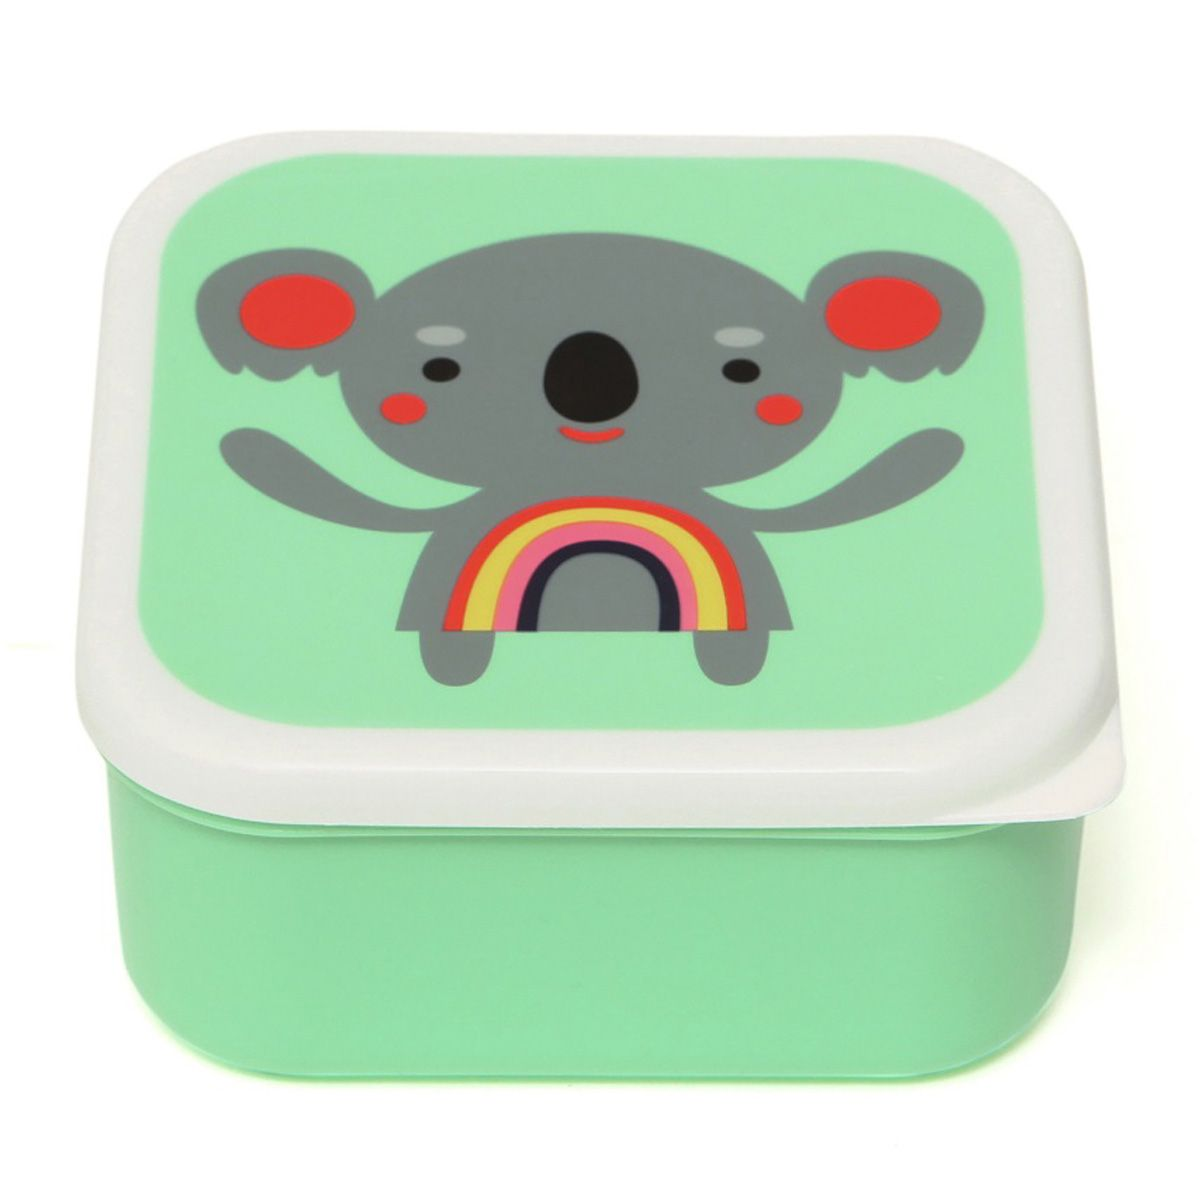 Lunchbox Brotdose 'Koala & Friends' im 3er-Set